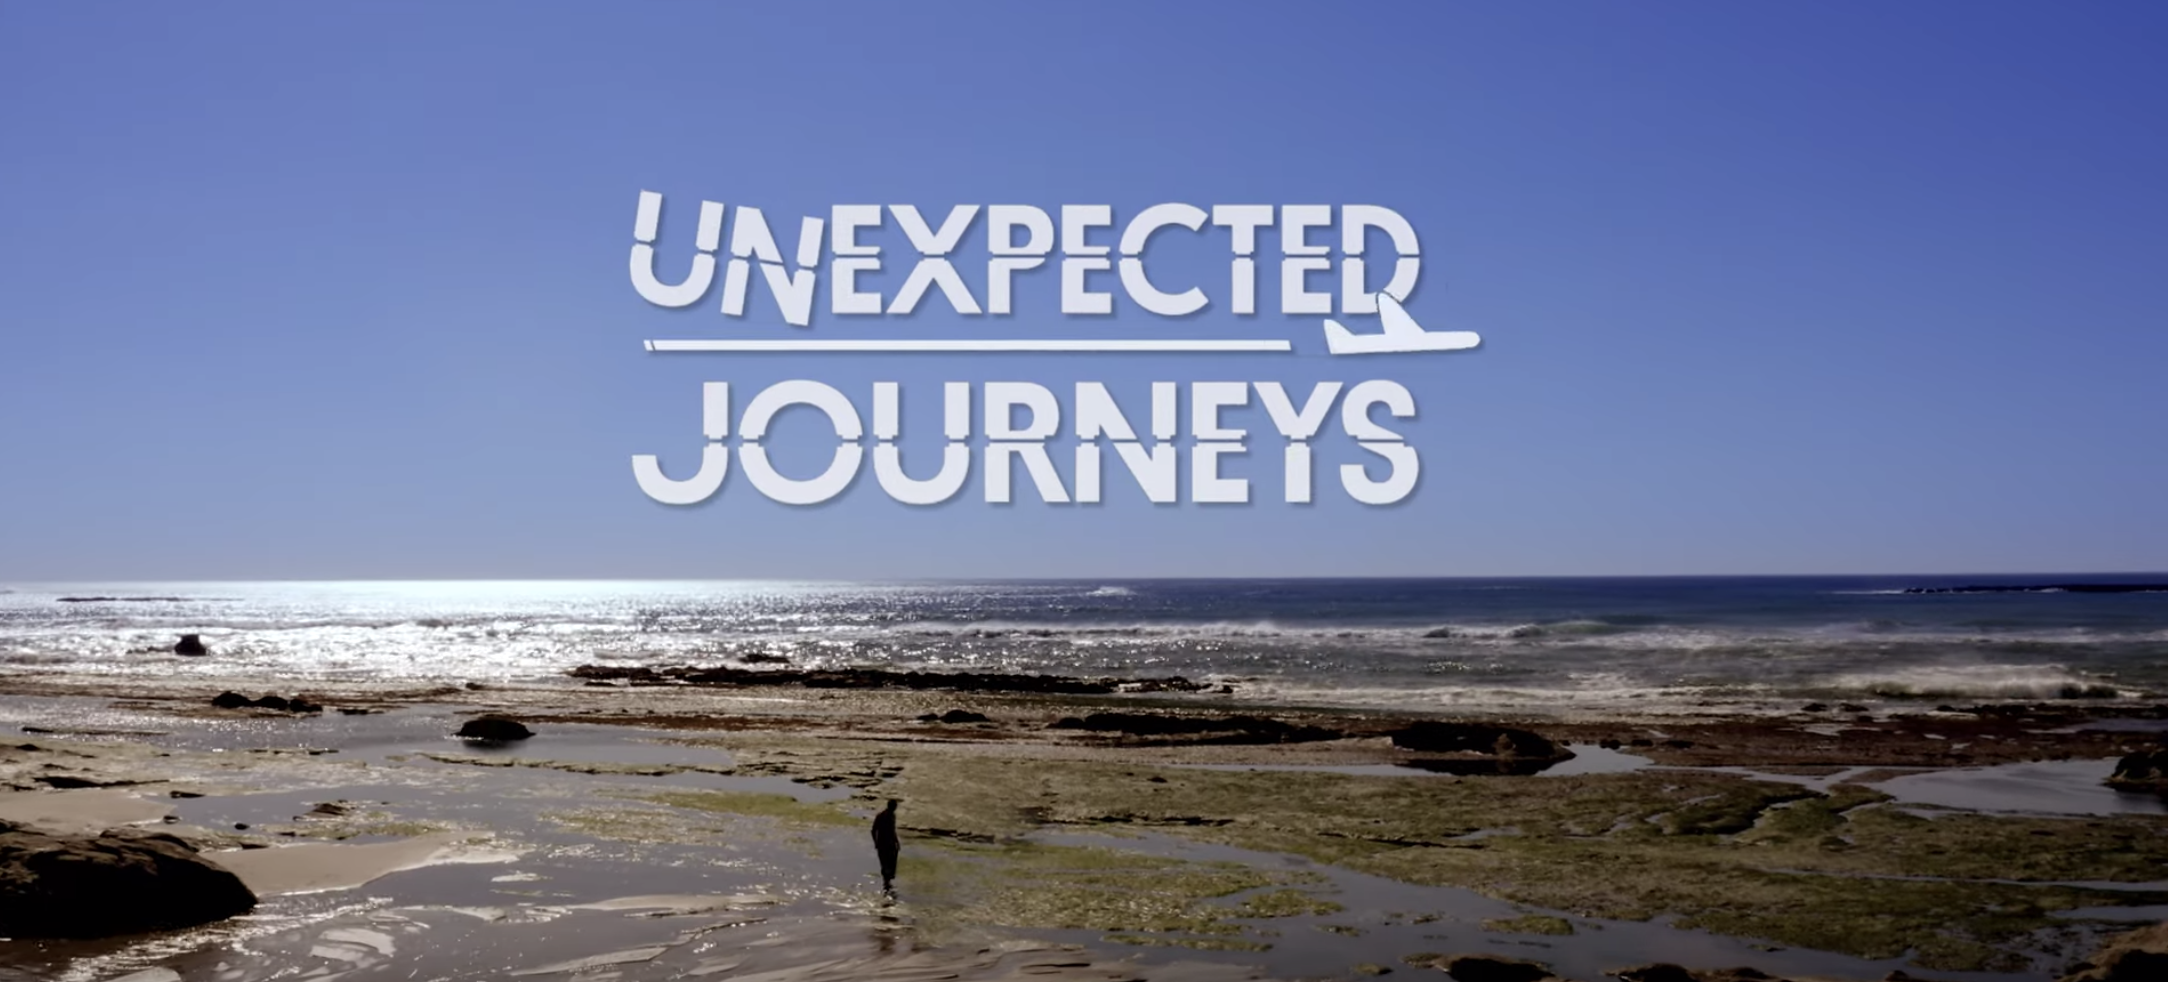 Photo courtesy: Unexpected Journeys screenshot from YouTube